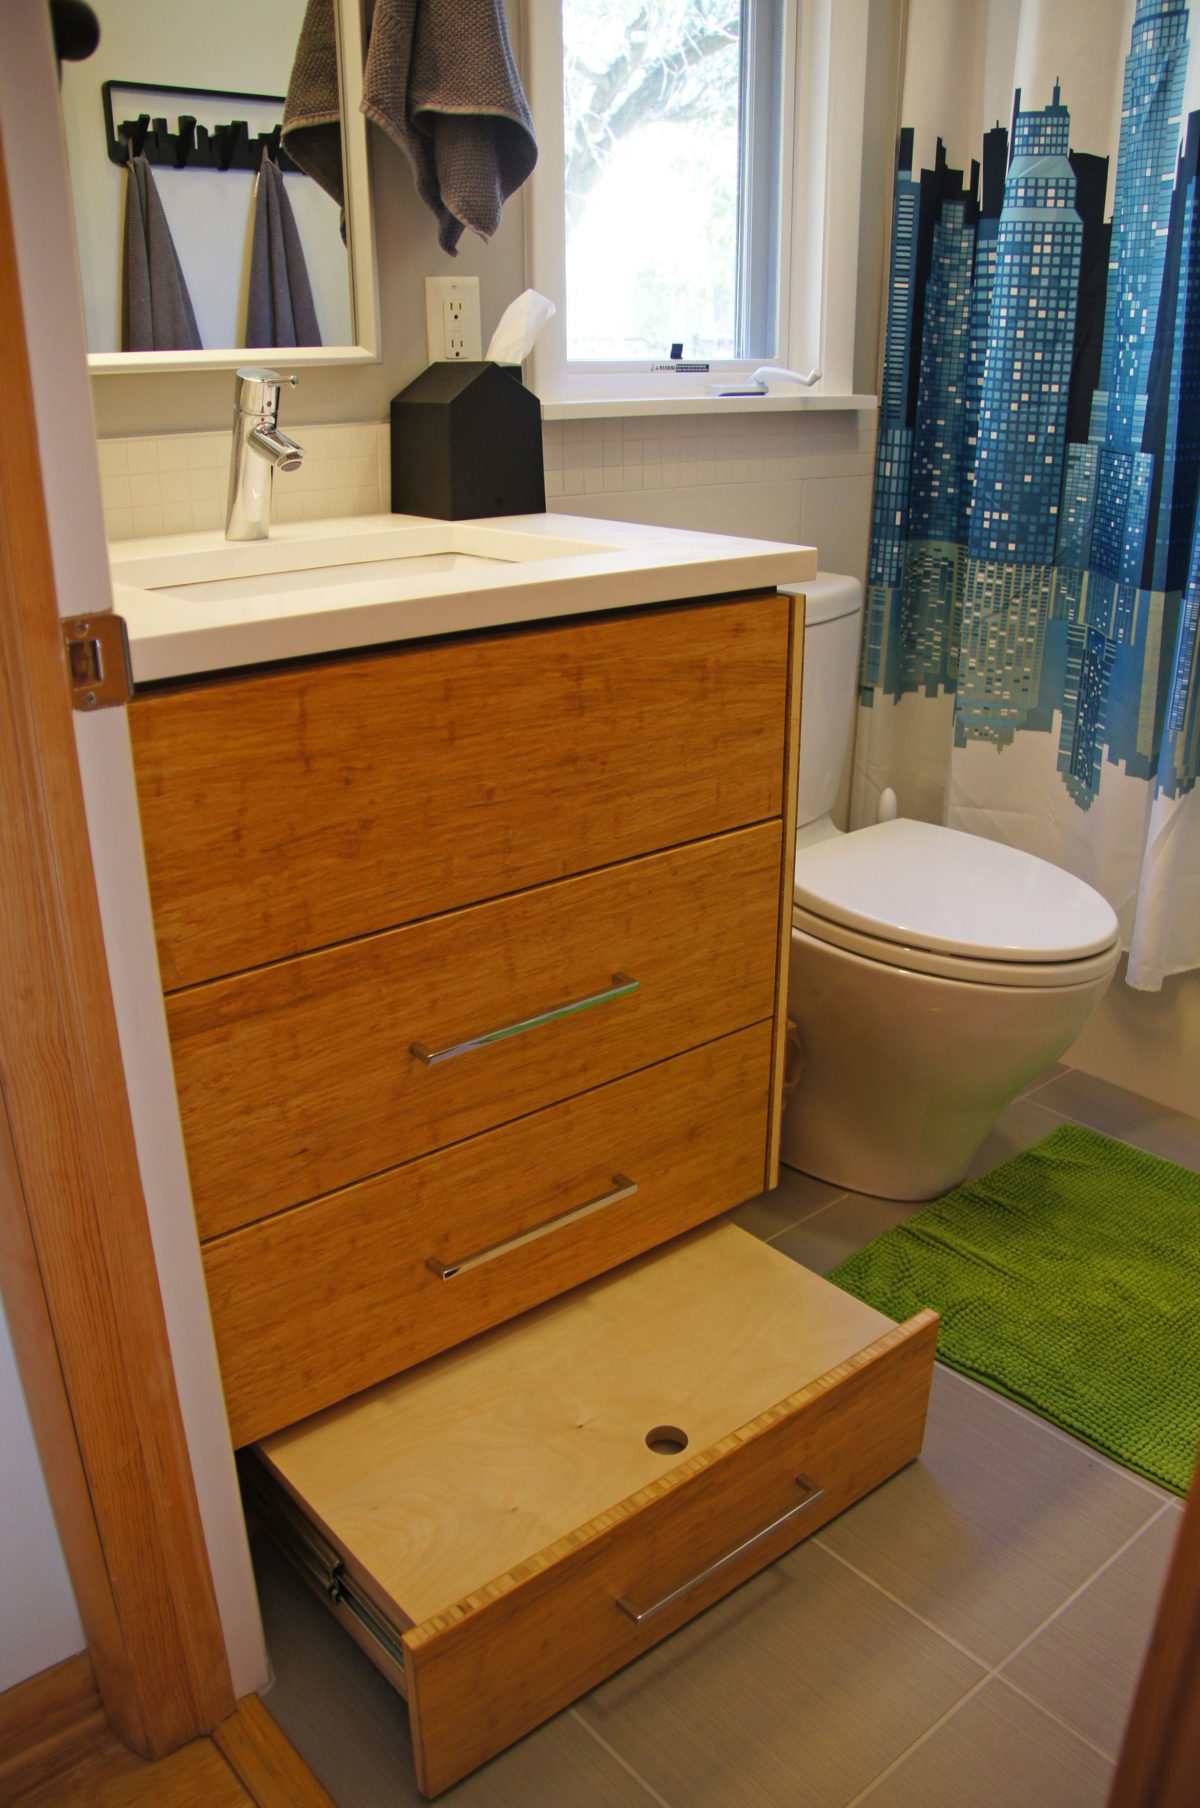 Typical 5x8 Bathroom Becomes Fun For Boys Fine Homebuilding